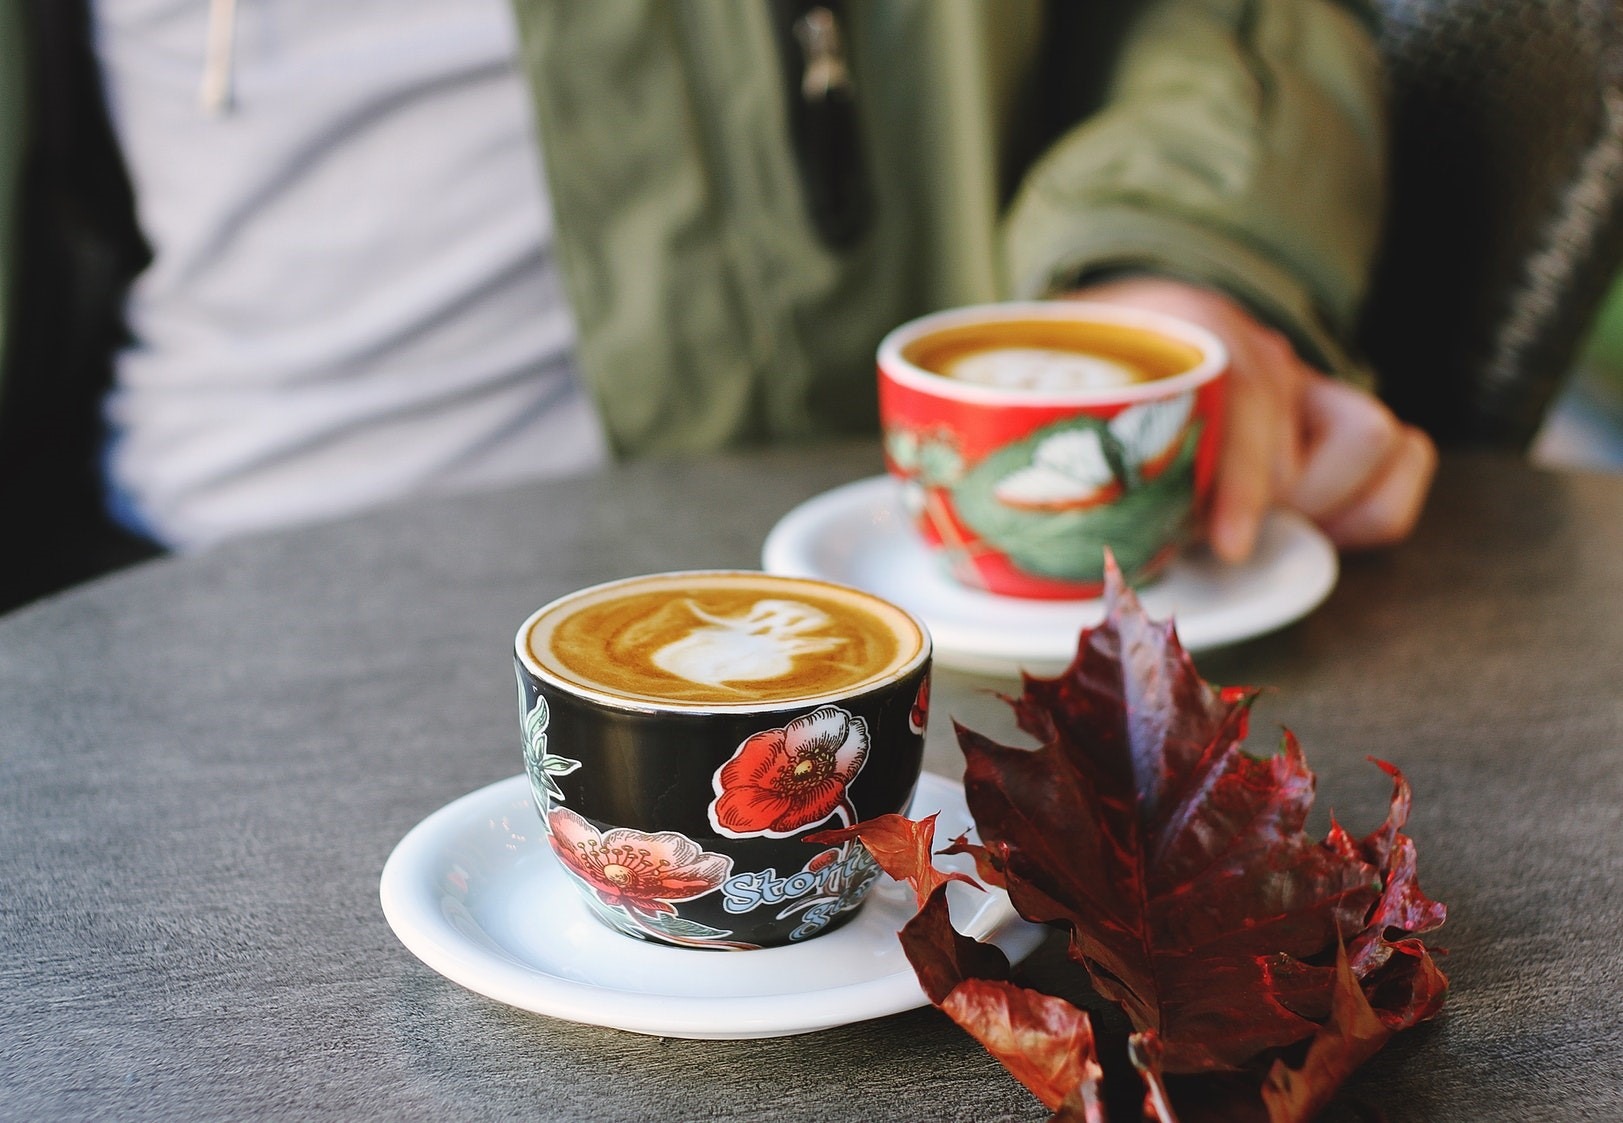 Canberra Café/Coffee Shop For Sale   Strong, Sustained growth over a long period